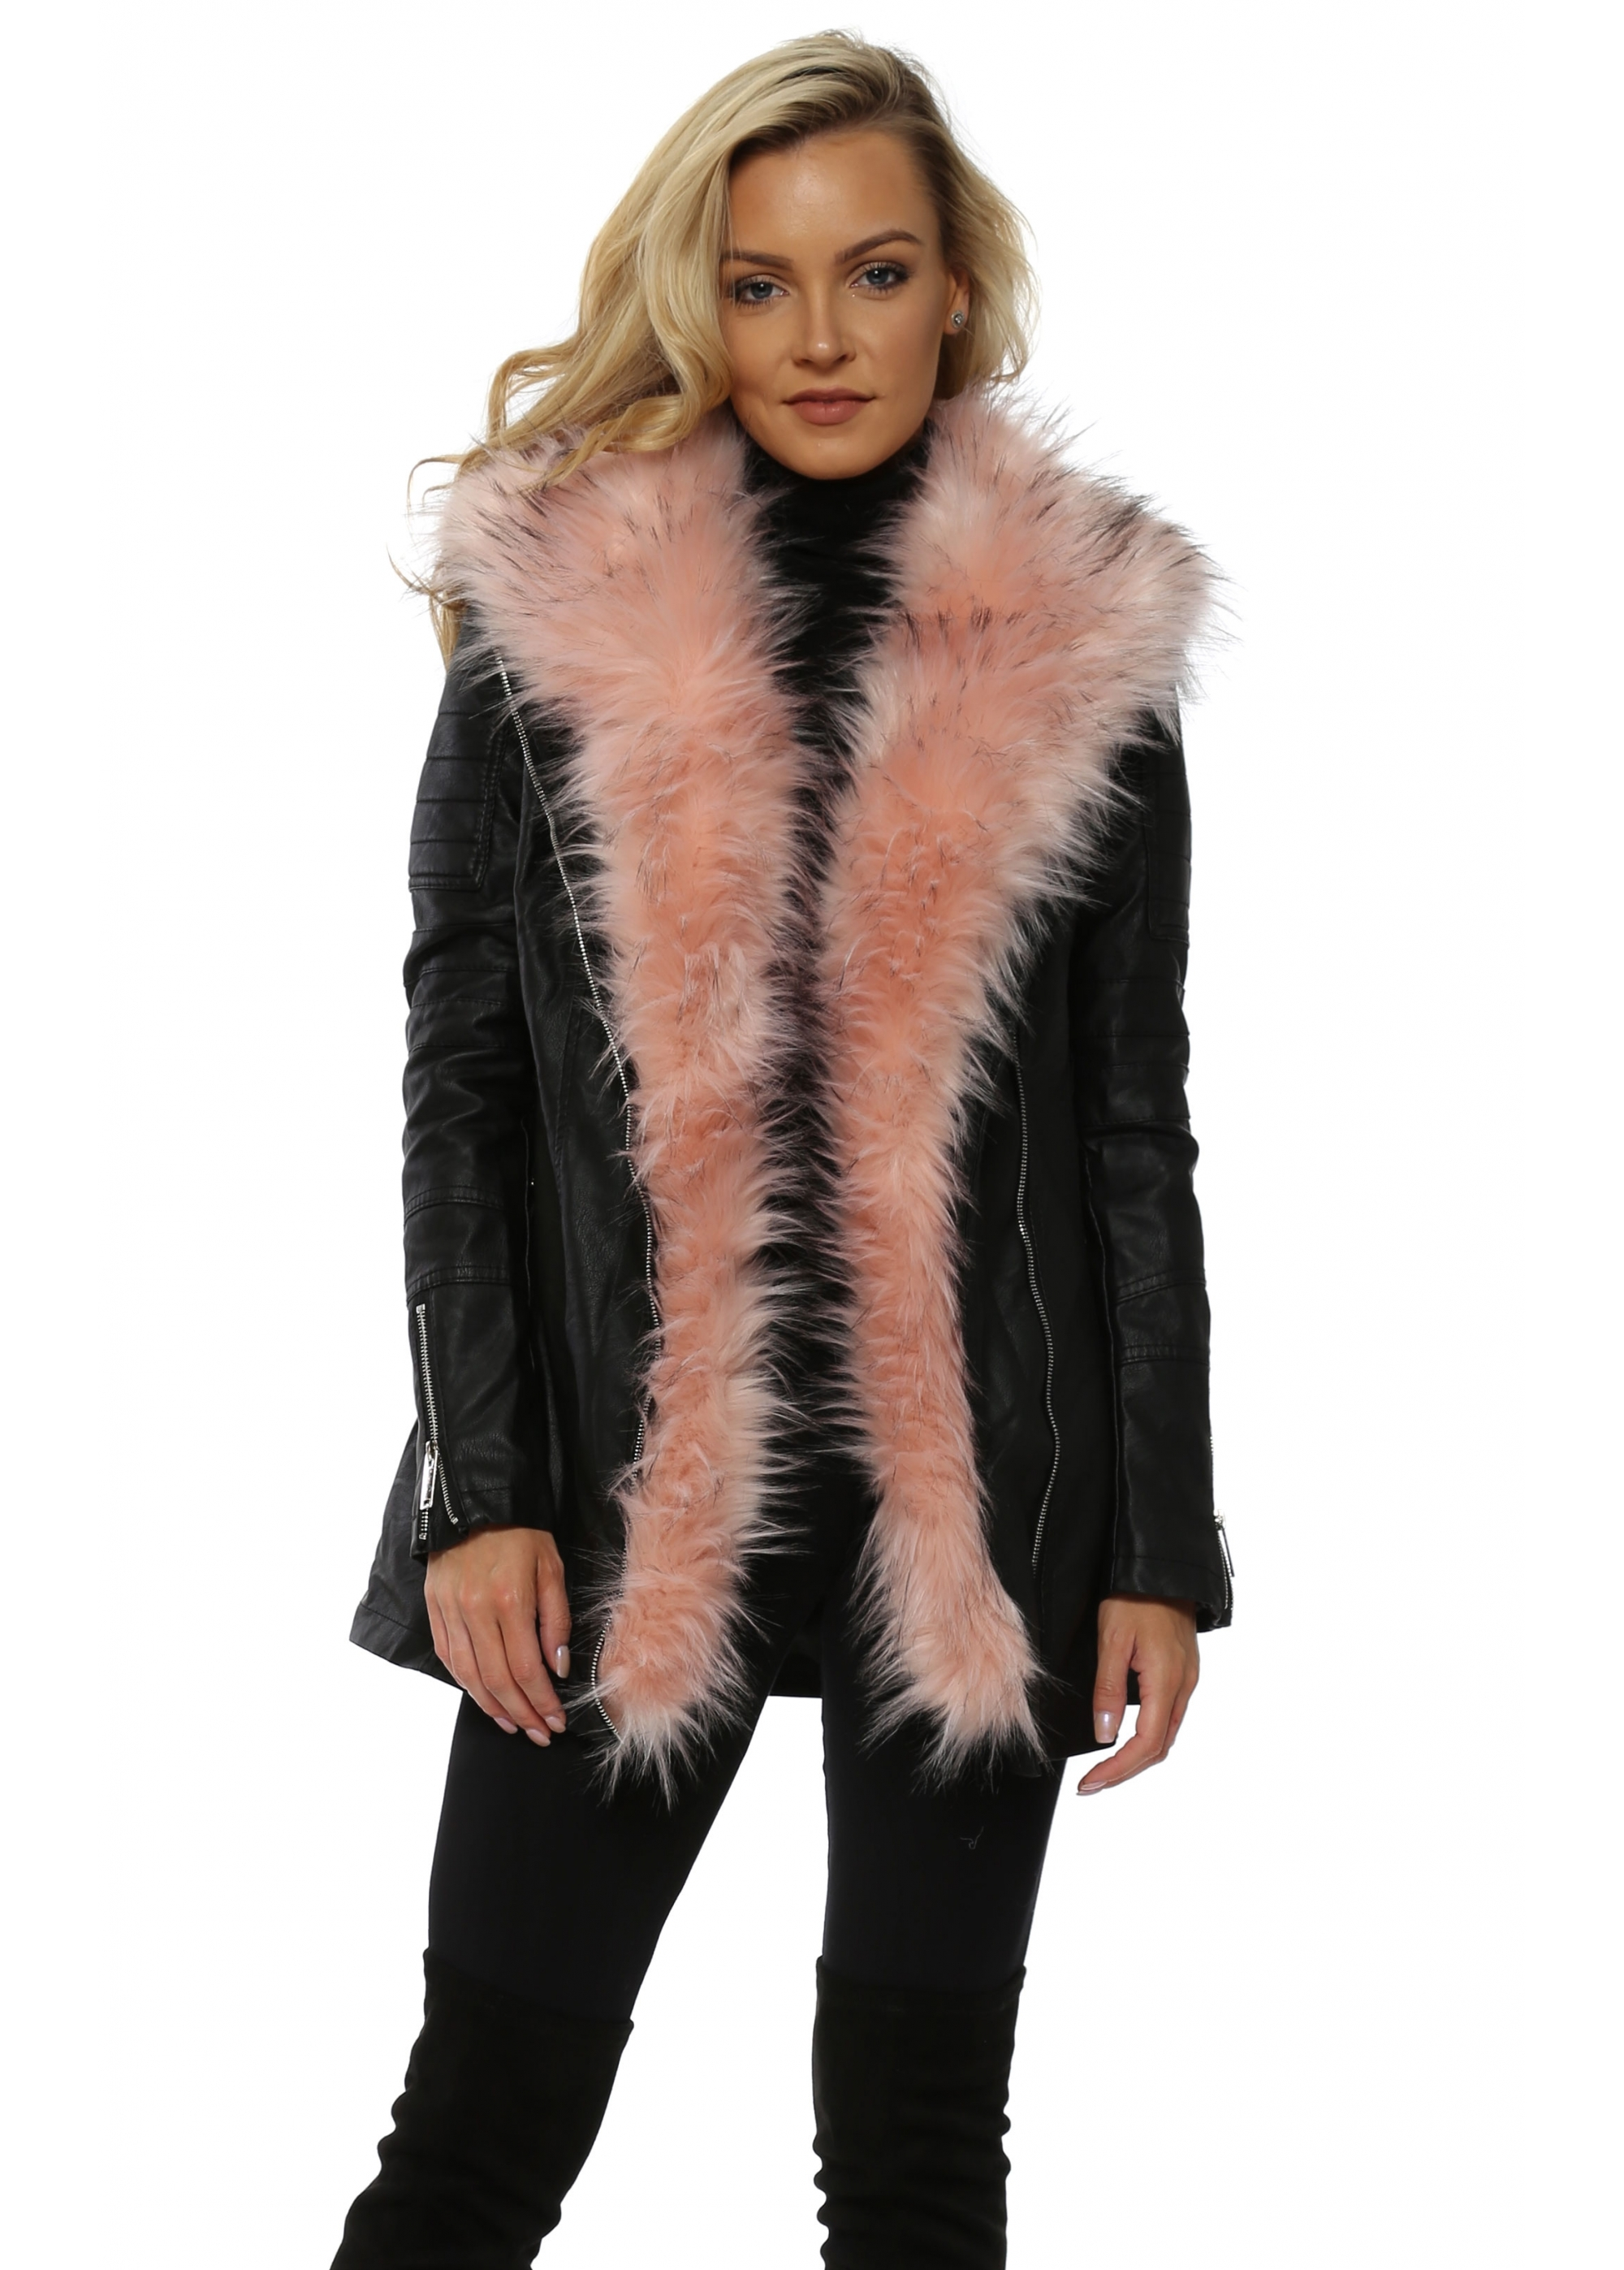 Black Faux Leather Coat With Pink Fur - Flamant Rose